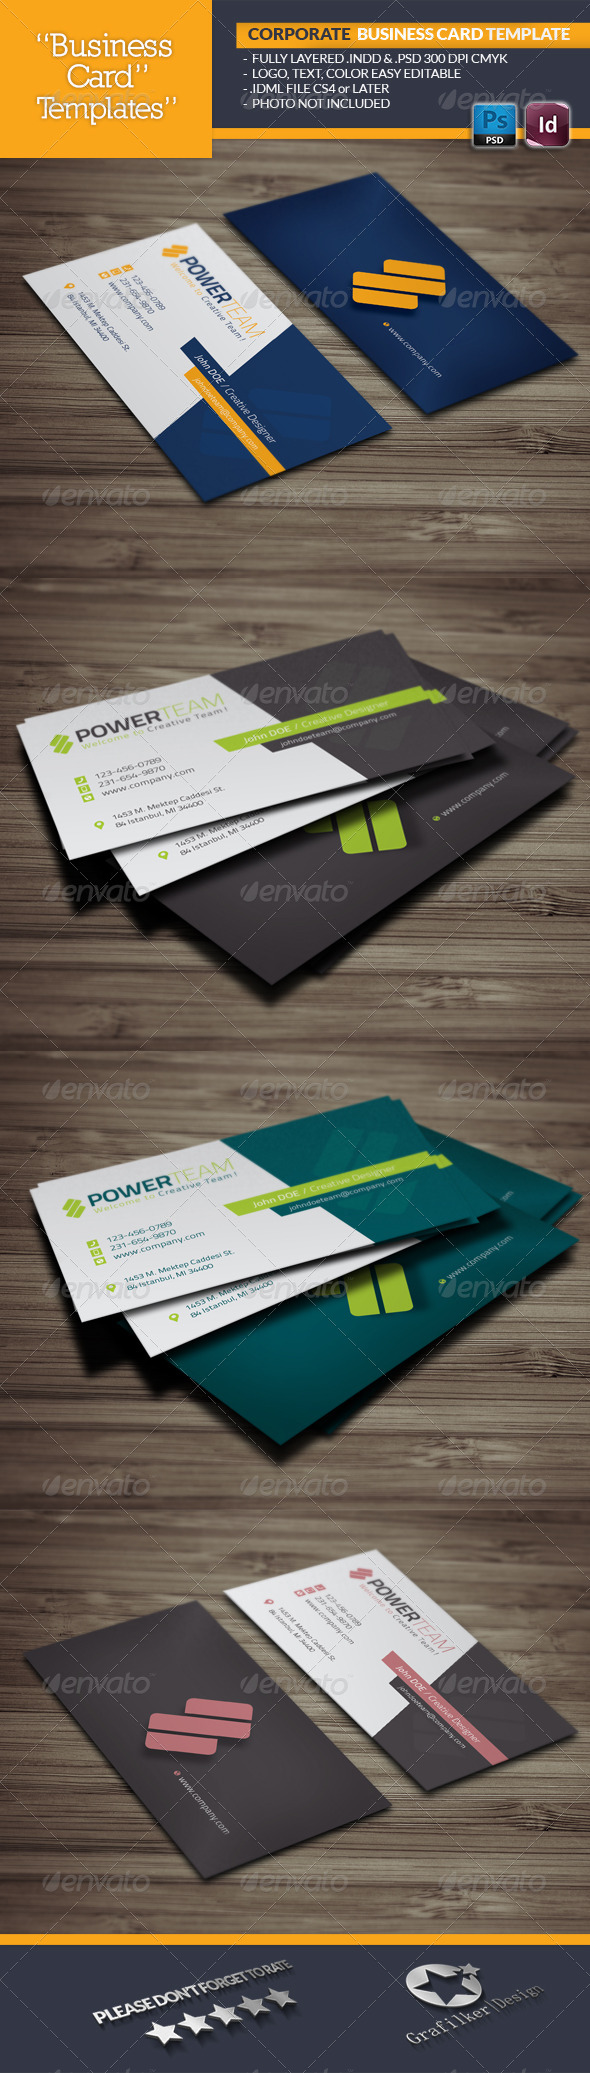 GraphicRiver Corporate Business Card Template 6503482